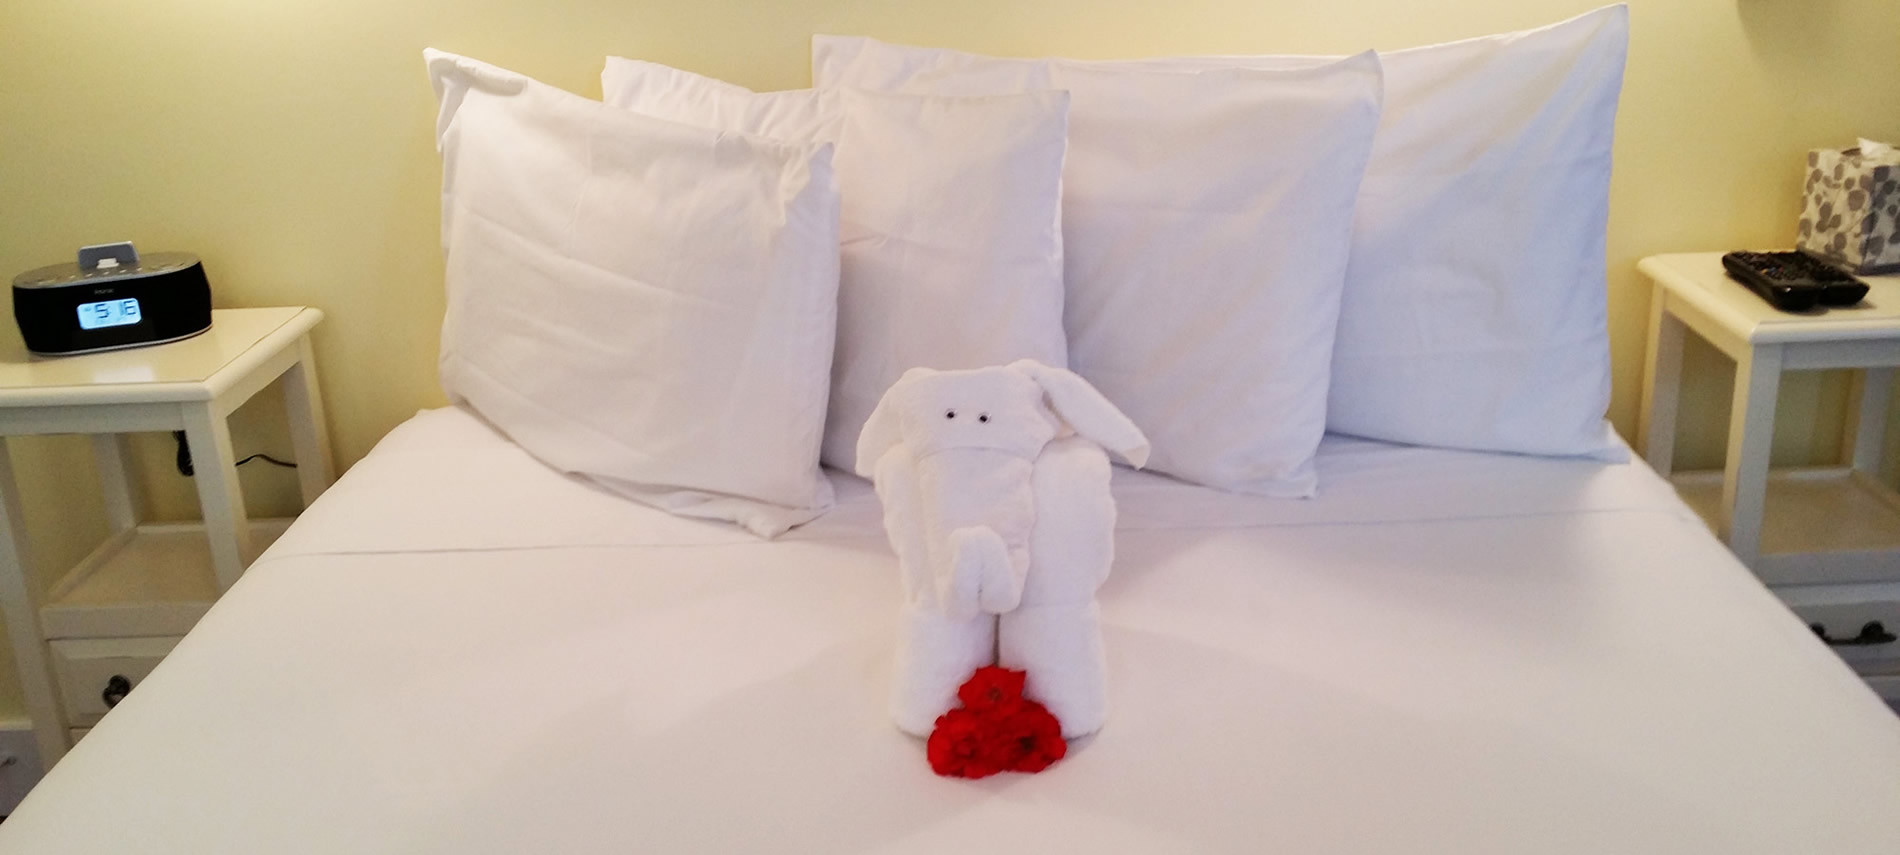 Towel sculpture of an elephant sitting on the bed with flowers by its feet. White bedspread and two nightstands